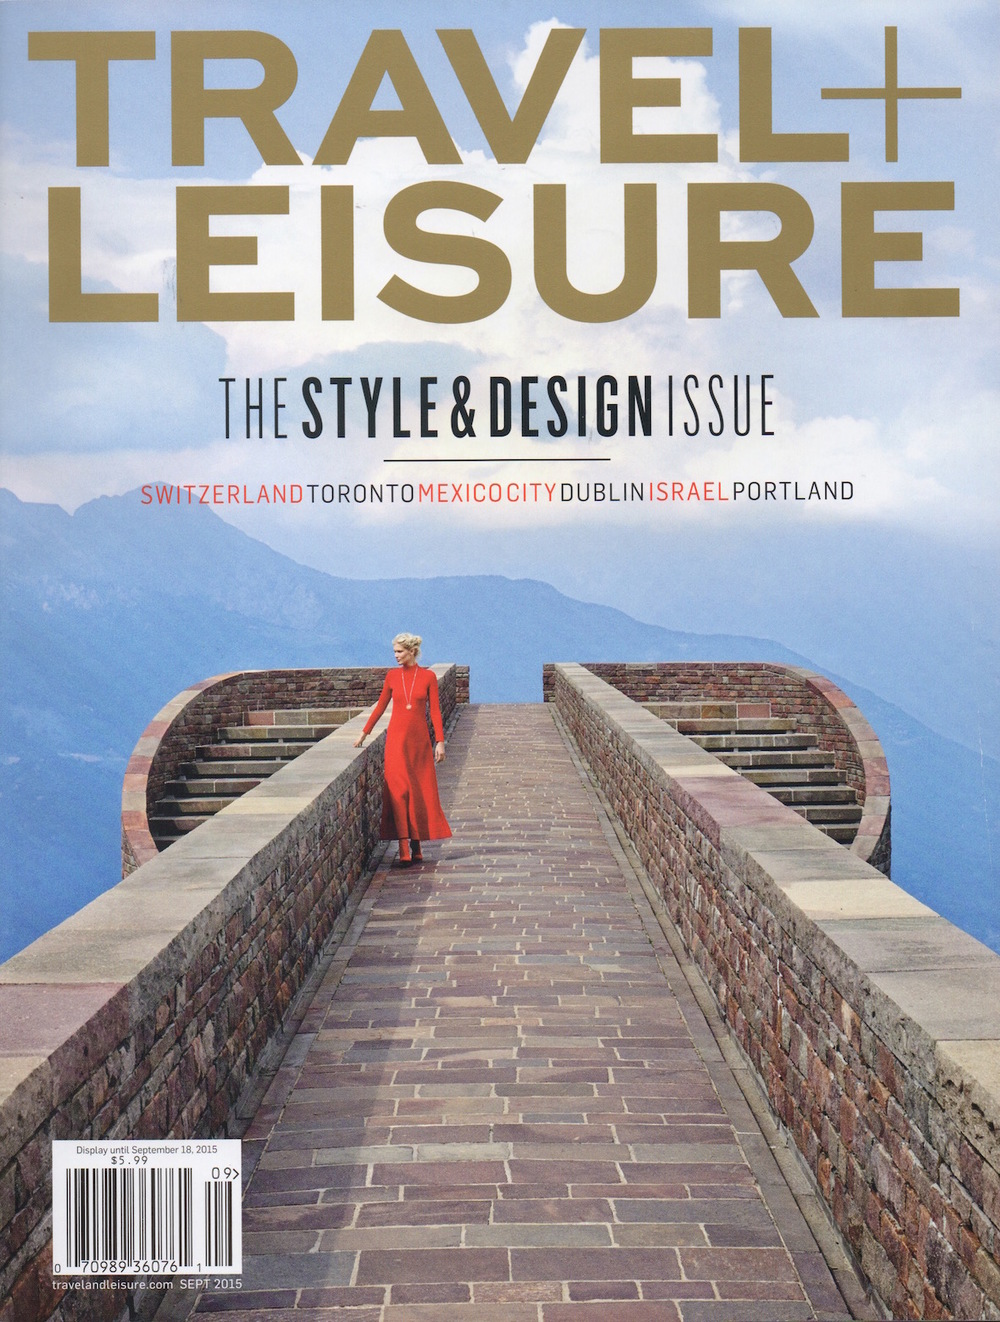 Travel+LeisureSept.2015COVER.jpg